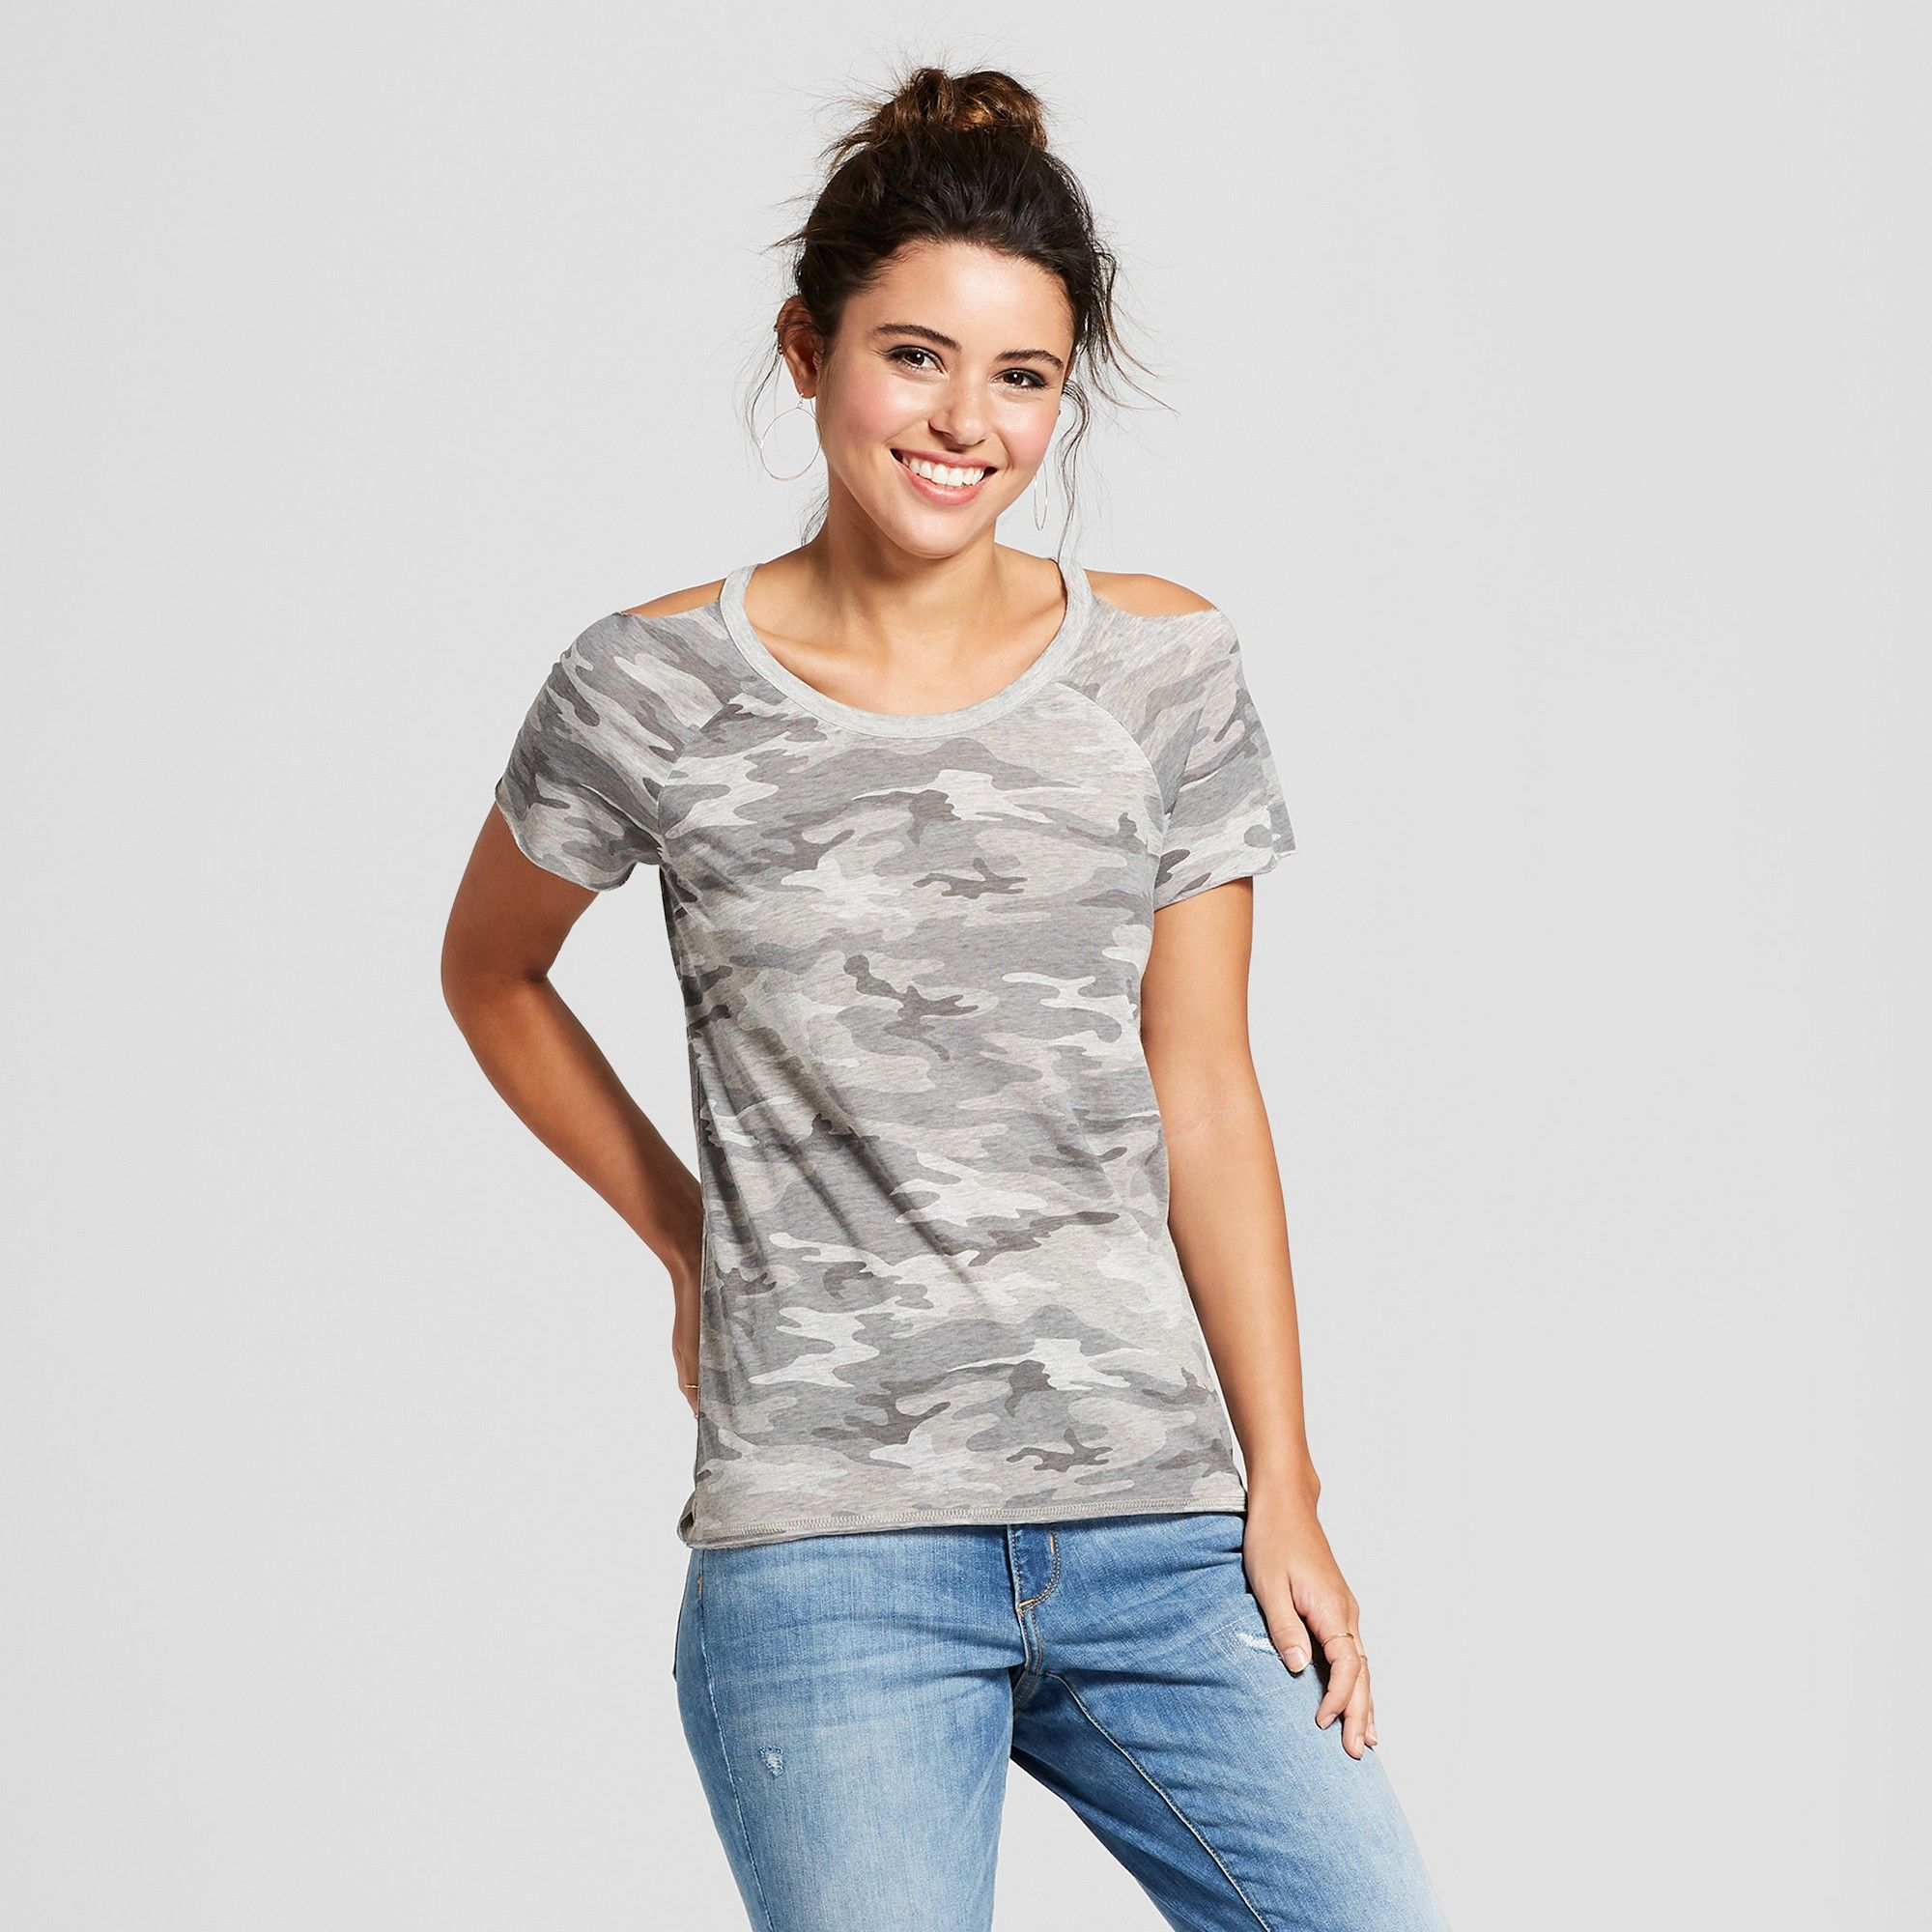 5d9fc993ee6 Women s Camo Print Short Sleeve Cold Shoulder Burnout Wash T-Shirt -  Grayson Threads (Juniors ) Heather Gray M